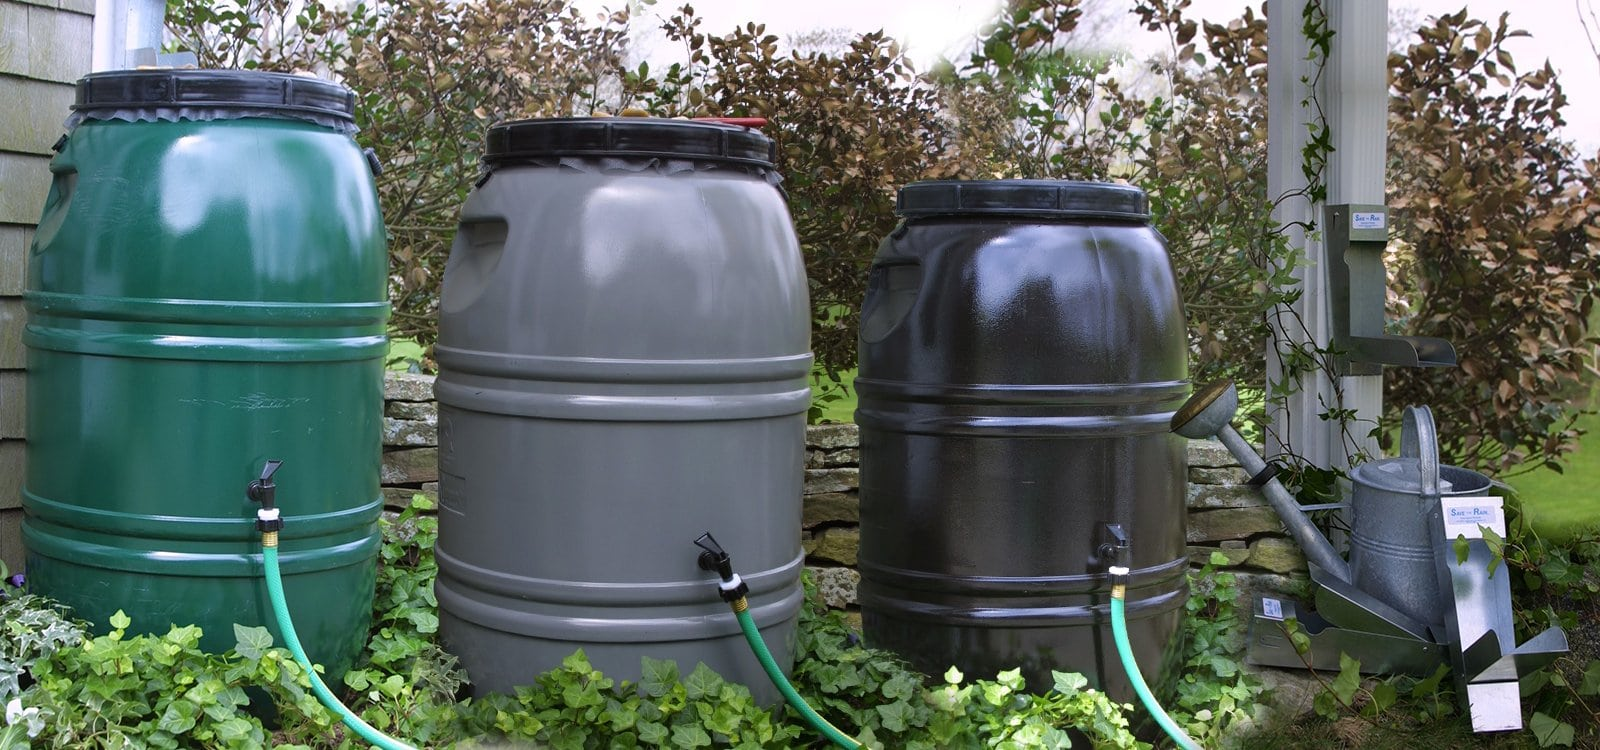 The Great American Rain Barrel Company